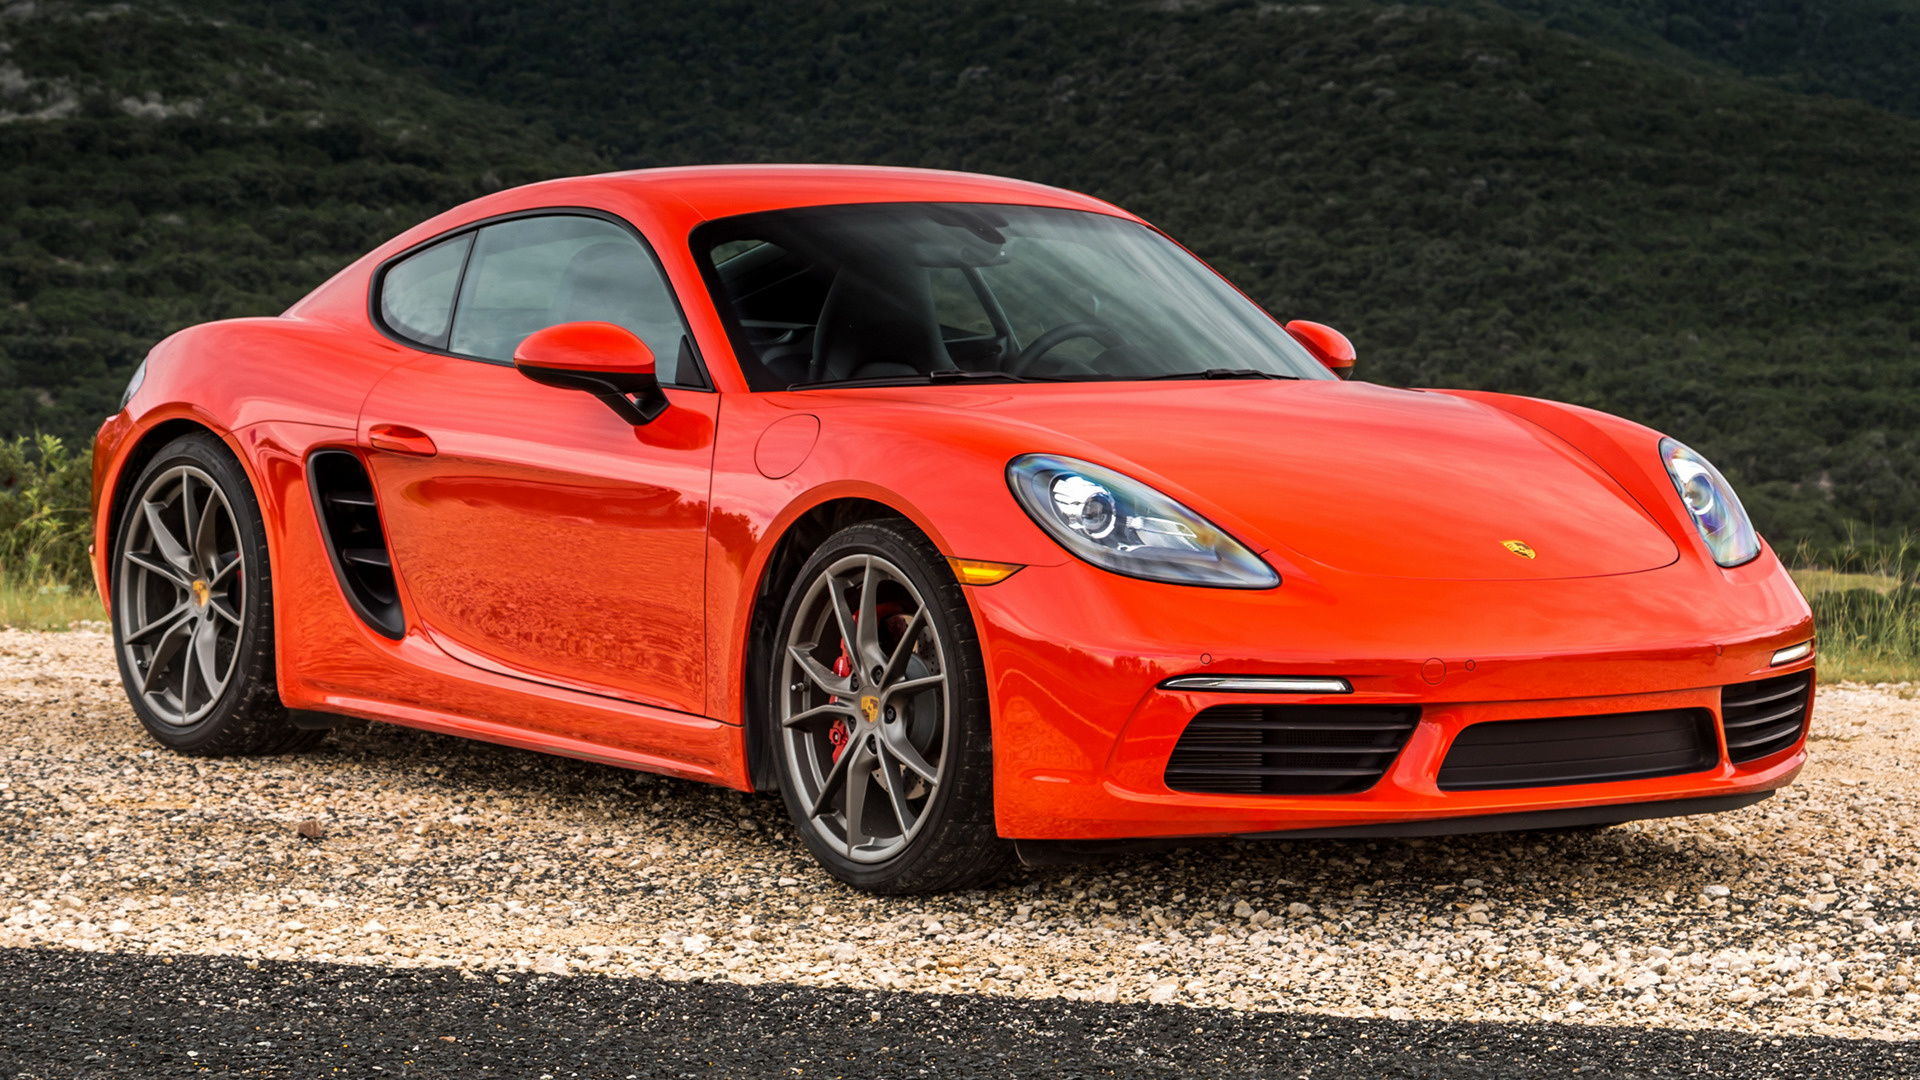 Porsche 718 Cayman S (2017) US Wallpapers and HD Images - Car Pixel